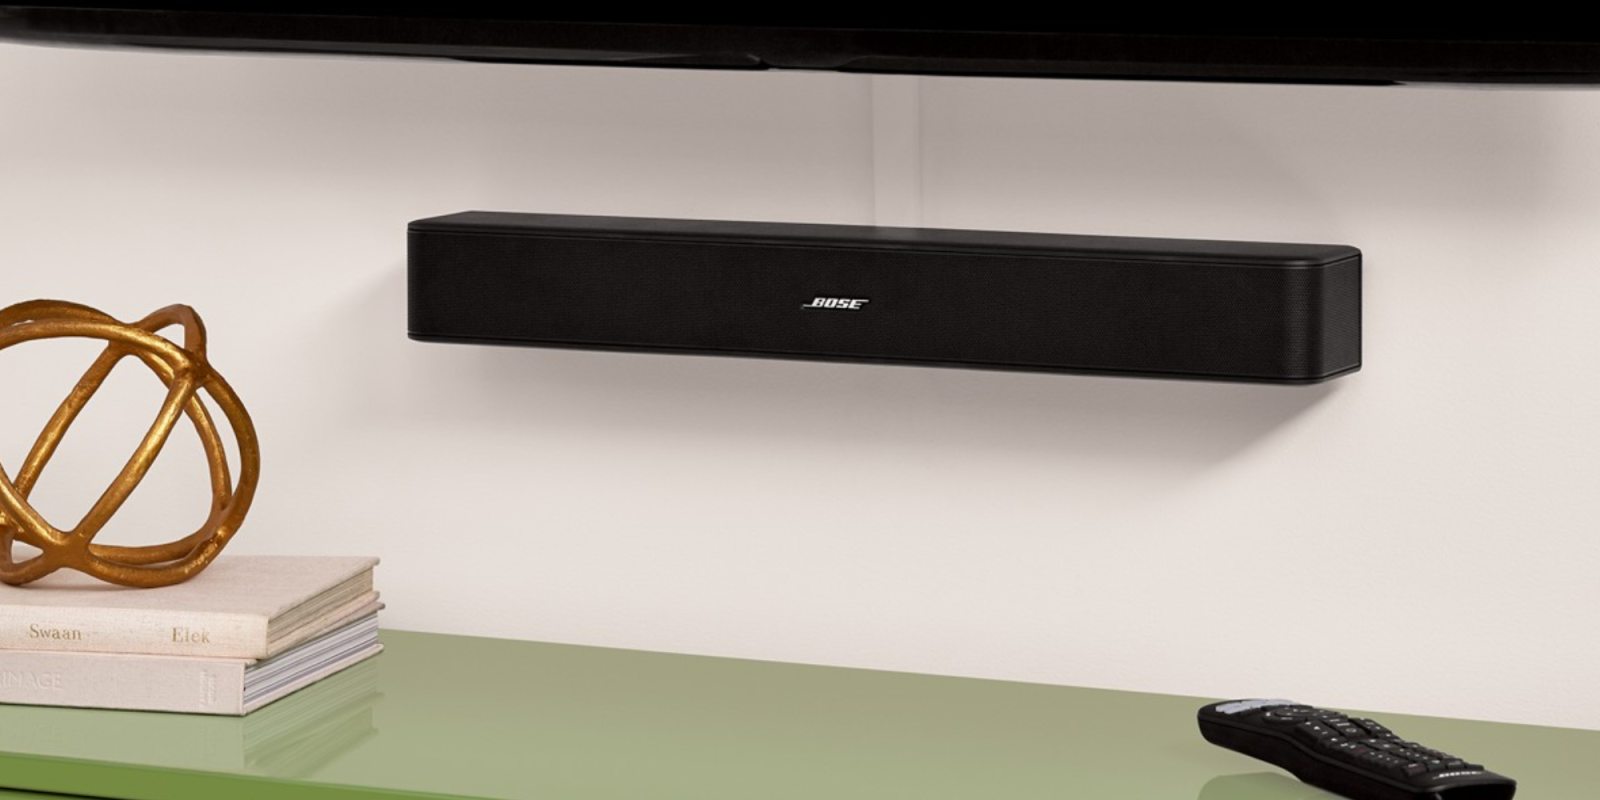 ed4ea4bb2ac Bose's Solo 5 TV Sound System gives your HDTV the audio boost it deserves:  $199 (Reg. $249)